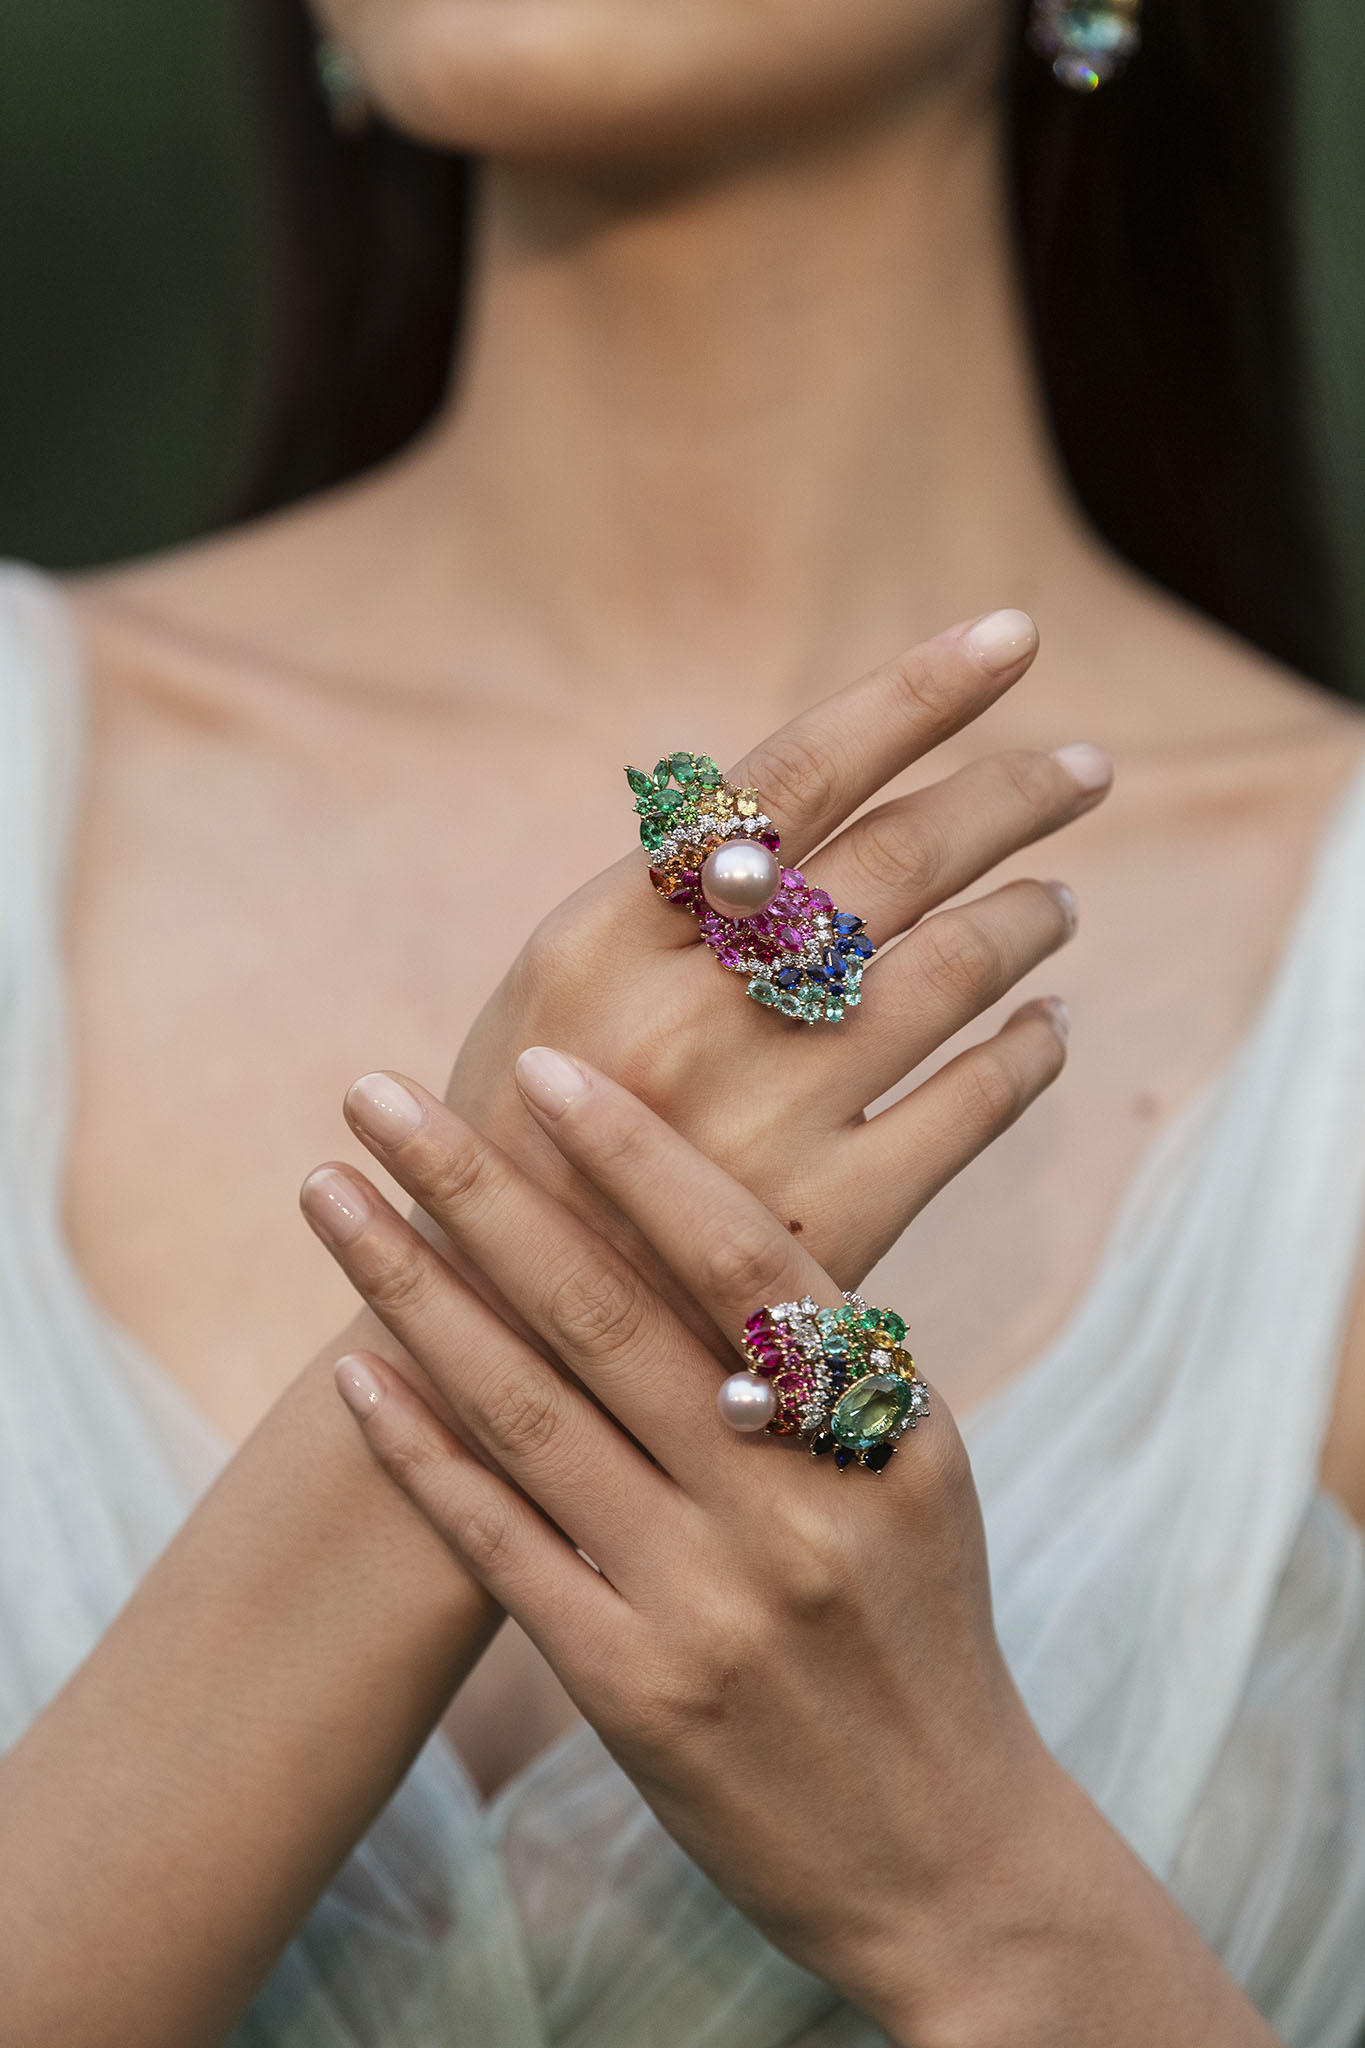 Dior's High Jewelry Collection presentation in Shanghai.